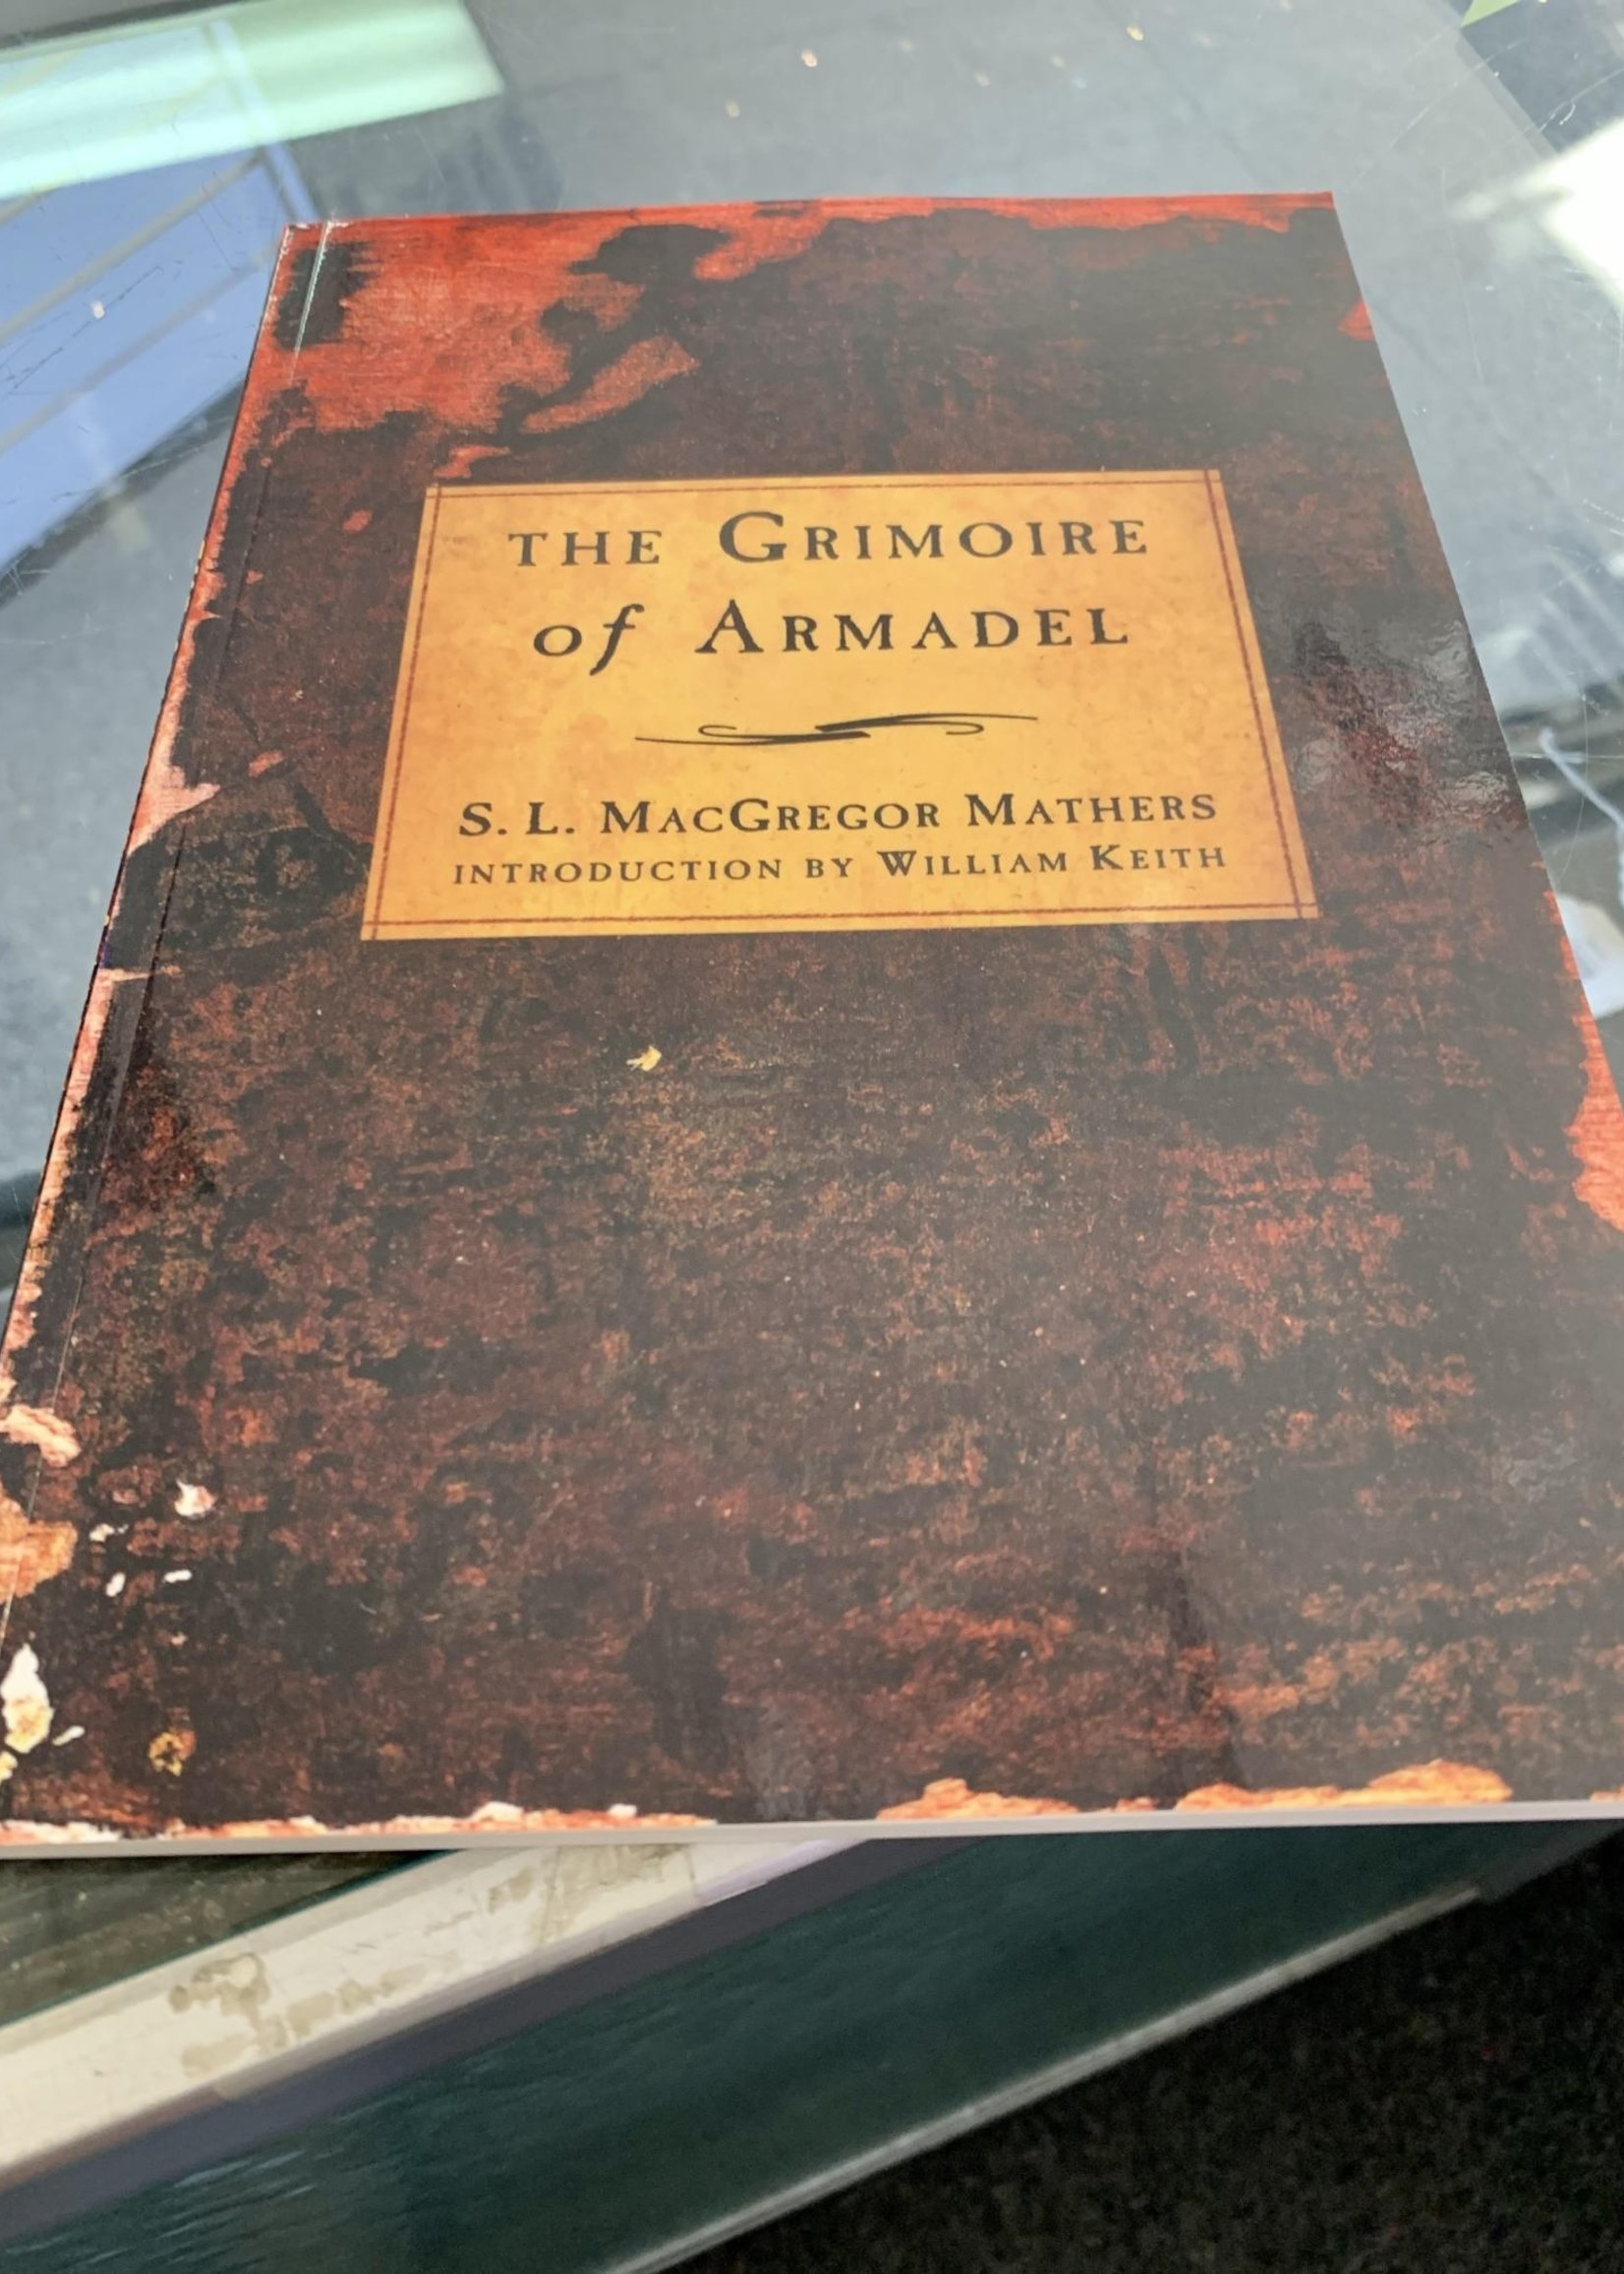 The Grimoire of Armadel